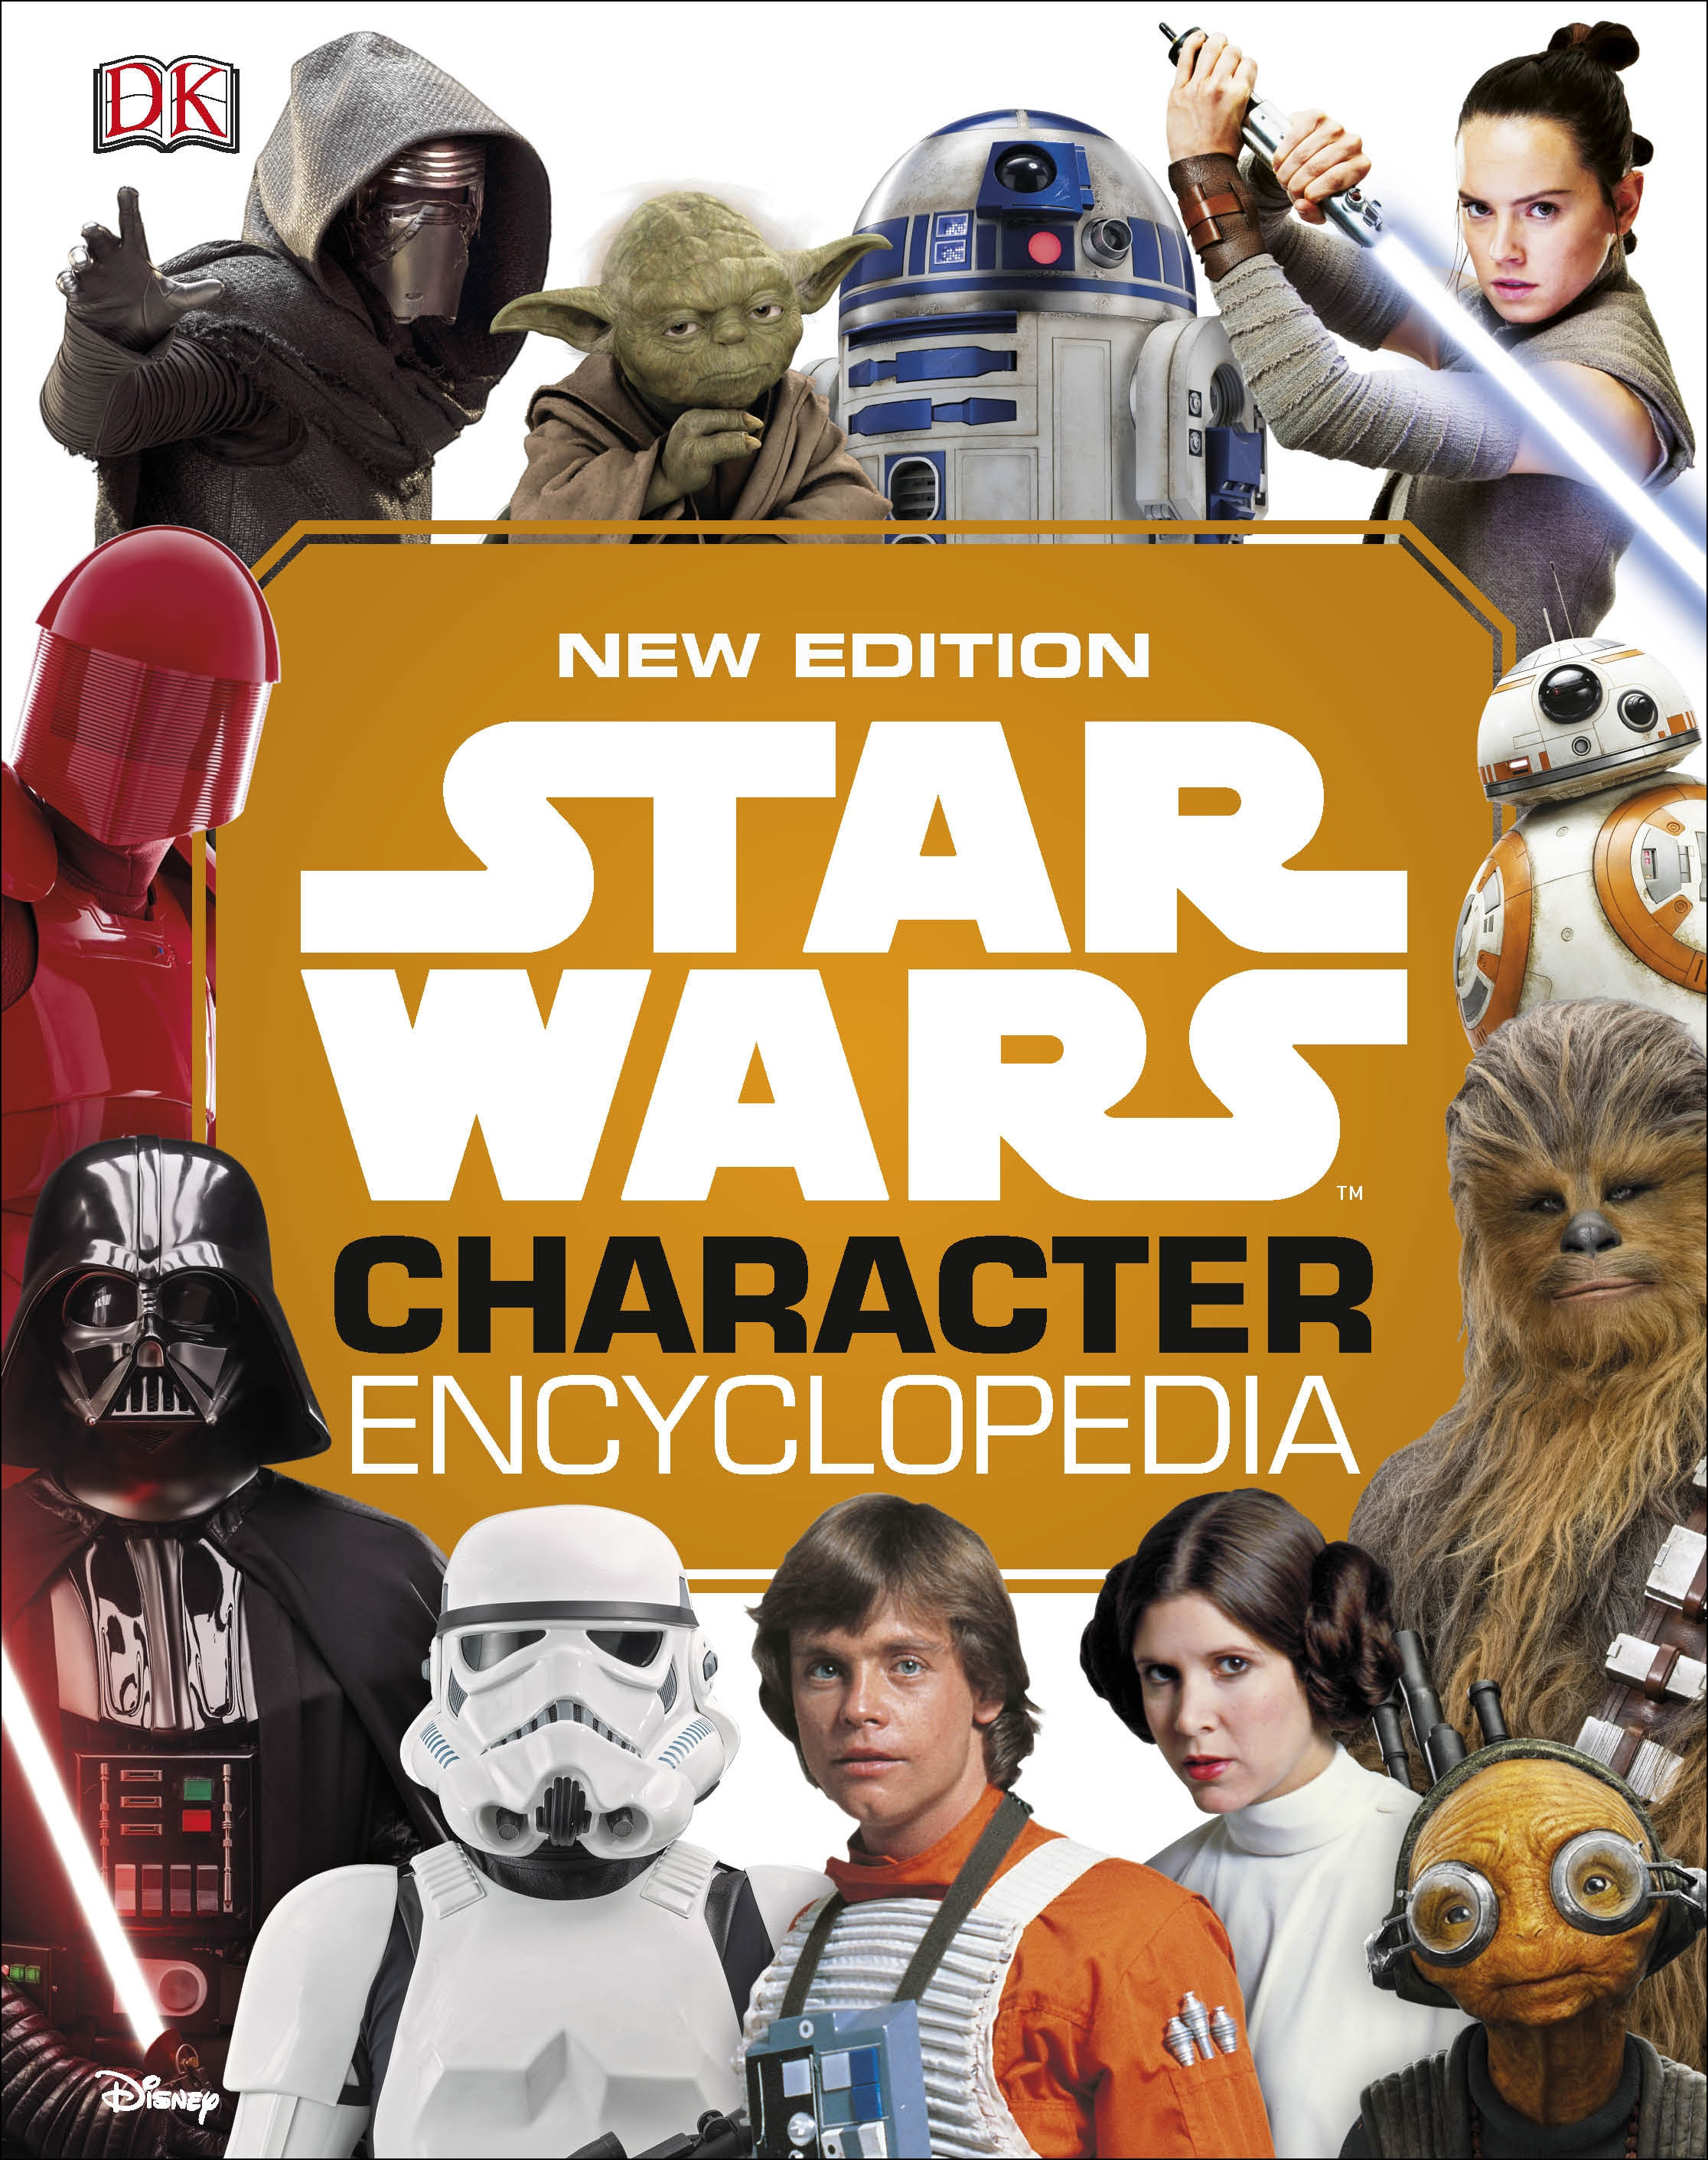 Star Wars Character Encyclopedia - New Edition (24.09.2019)